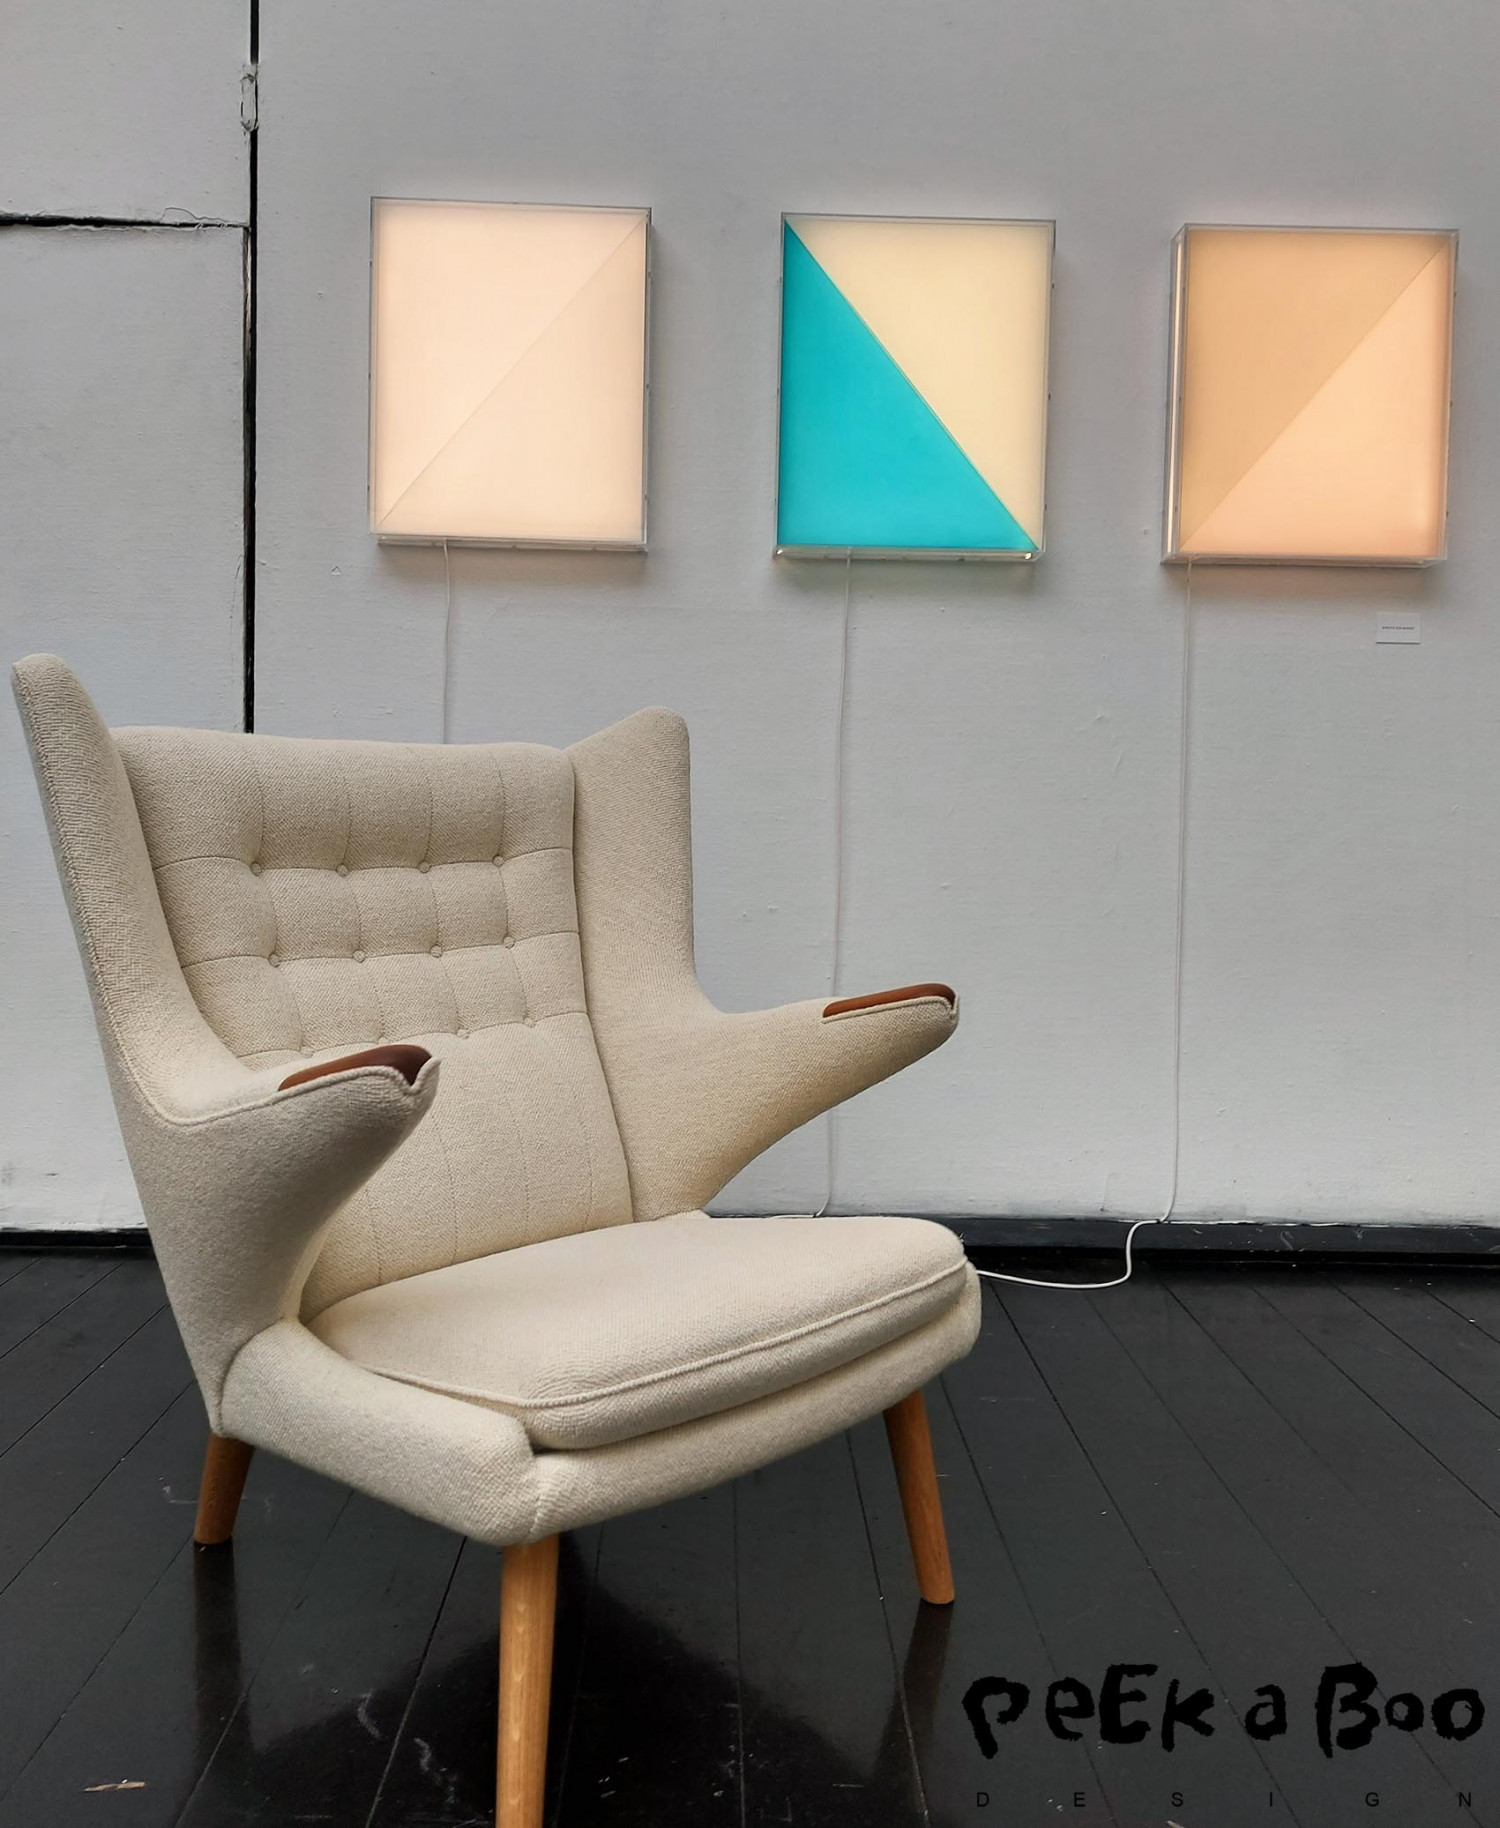 These lightboxes on the wall by Birgitte Due Madsen was a new way of intigrating light to a room. Combined with a classic chair by PP møbler.